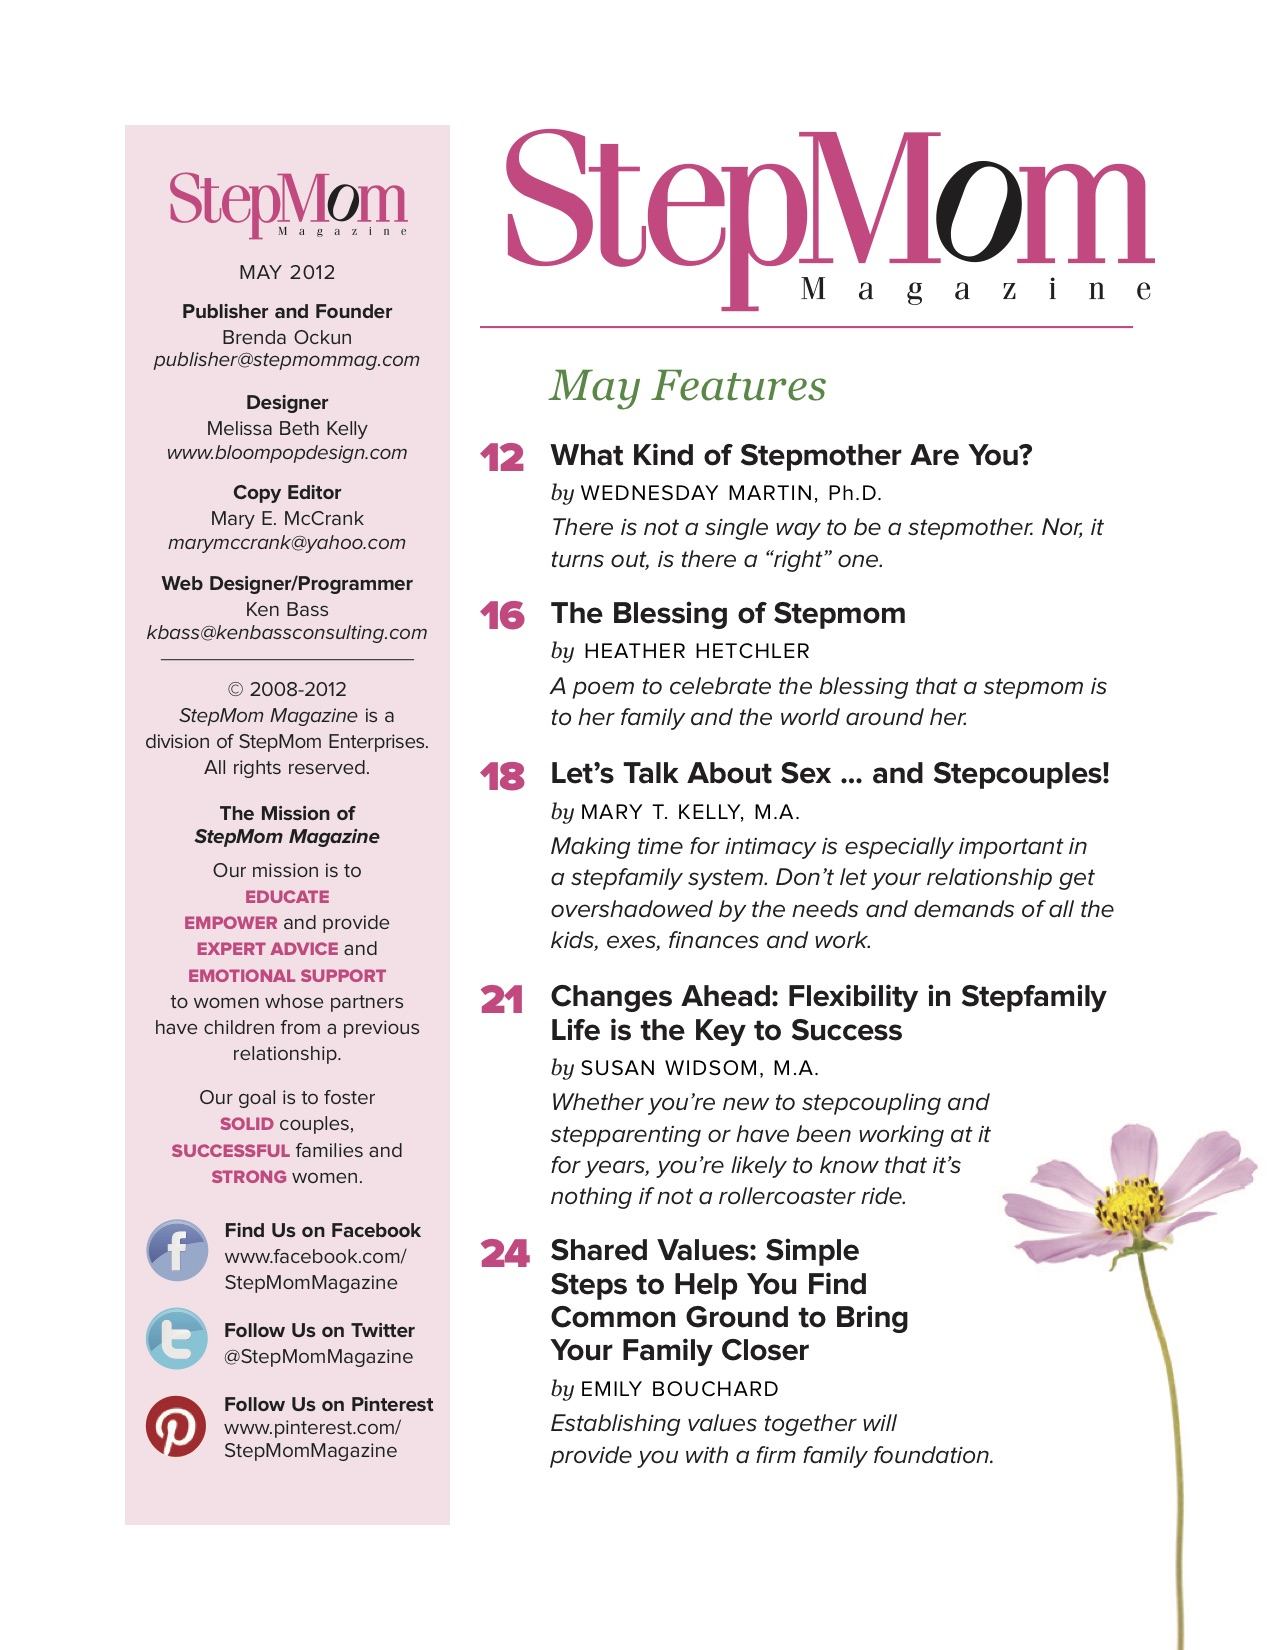 May 2012 Issue - StepMom Magazine